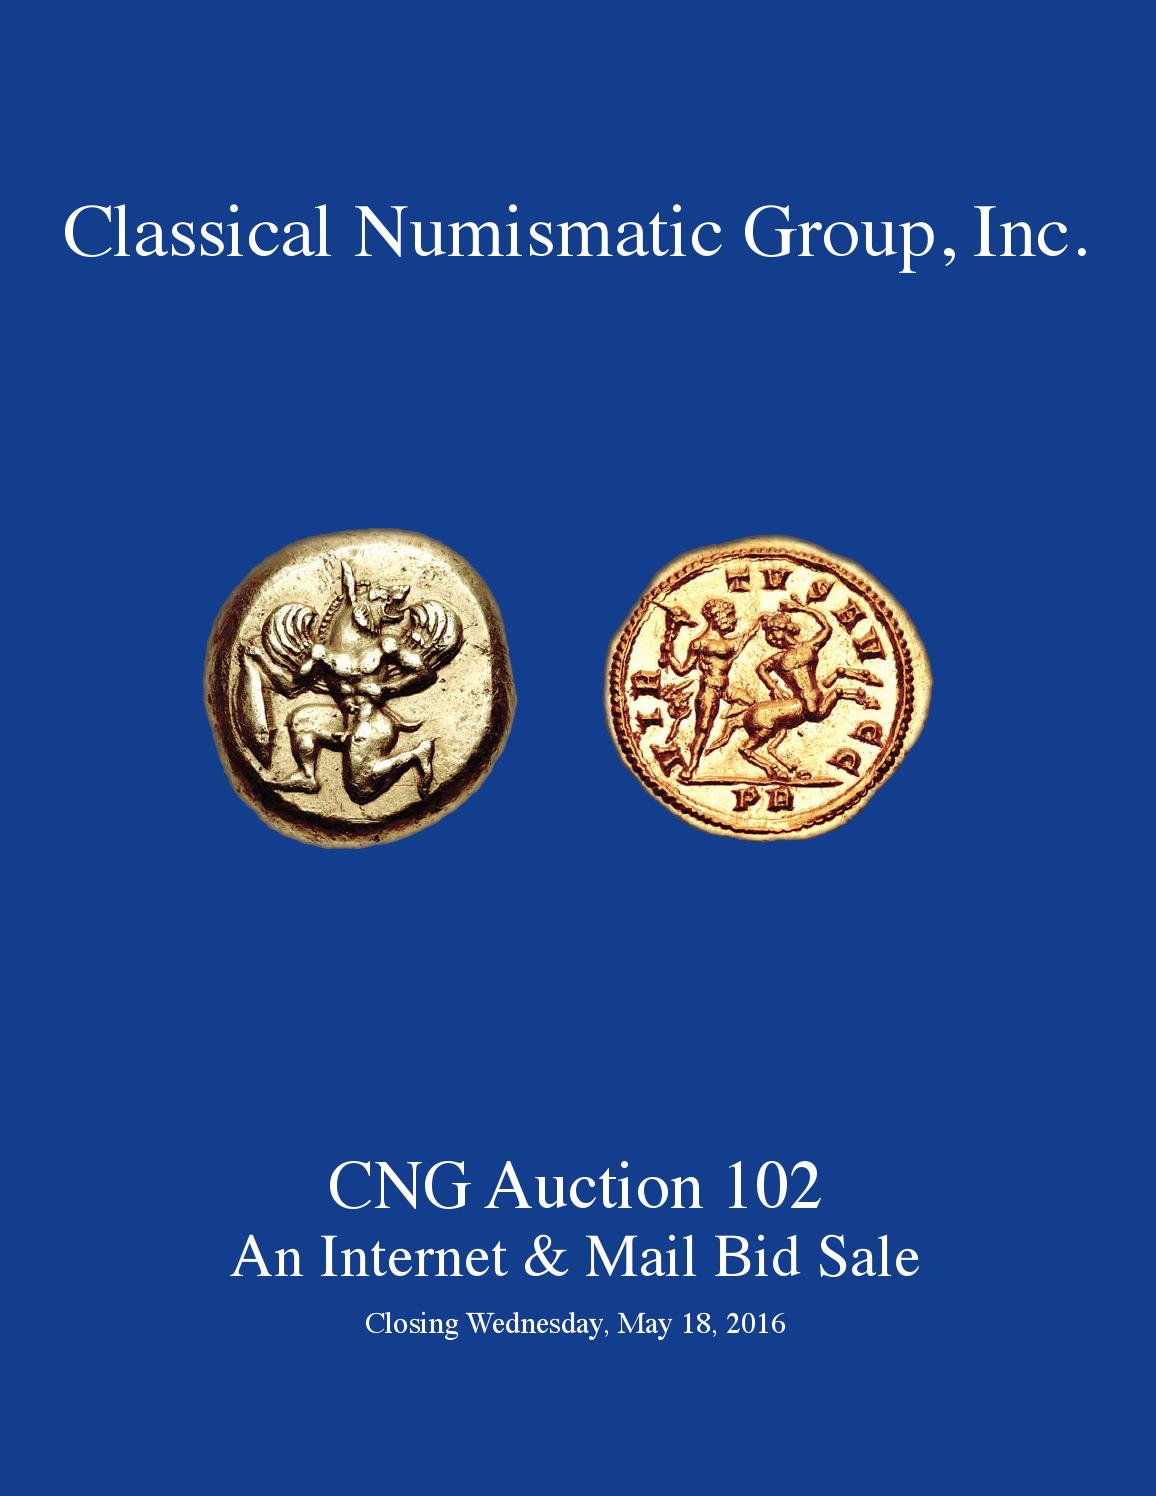 Cng Mbs 102 Virtual Catalog By Classical Numismatic Group Llc Issuu Drive Vacuum Diagram In Addition Curtis 3000 Snow Plow Wiring